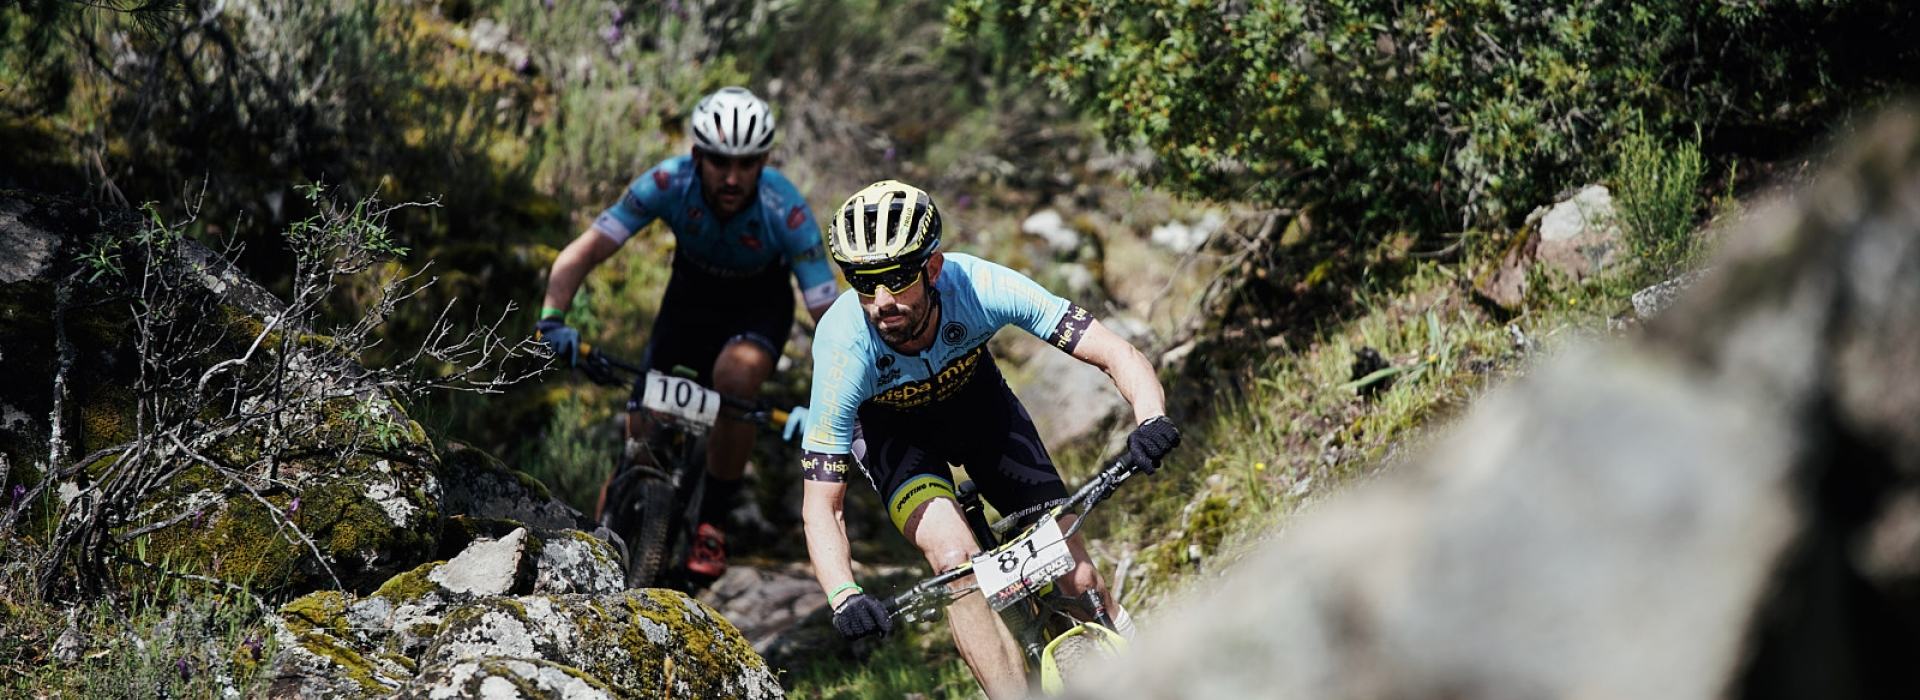 Official route of Andalucía Bike Race presented by Caja Rural Jaén 2020